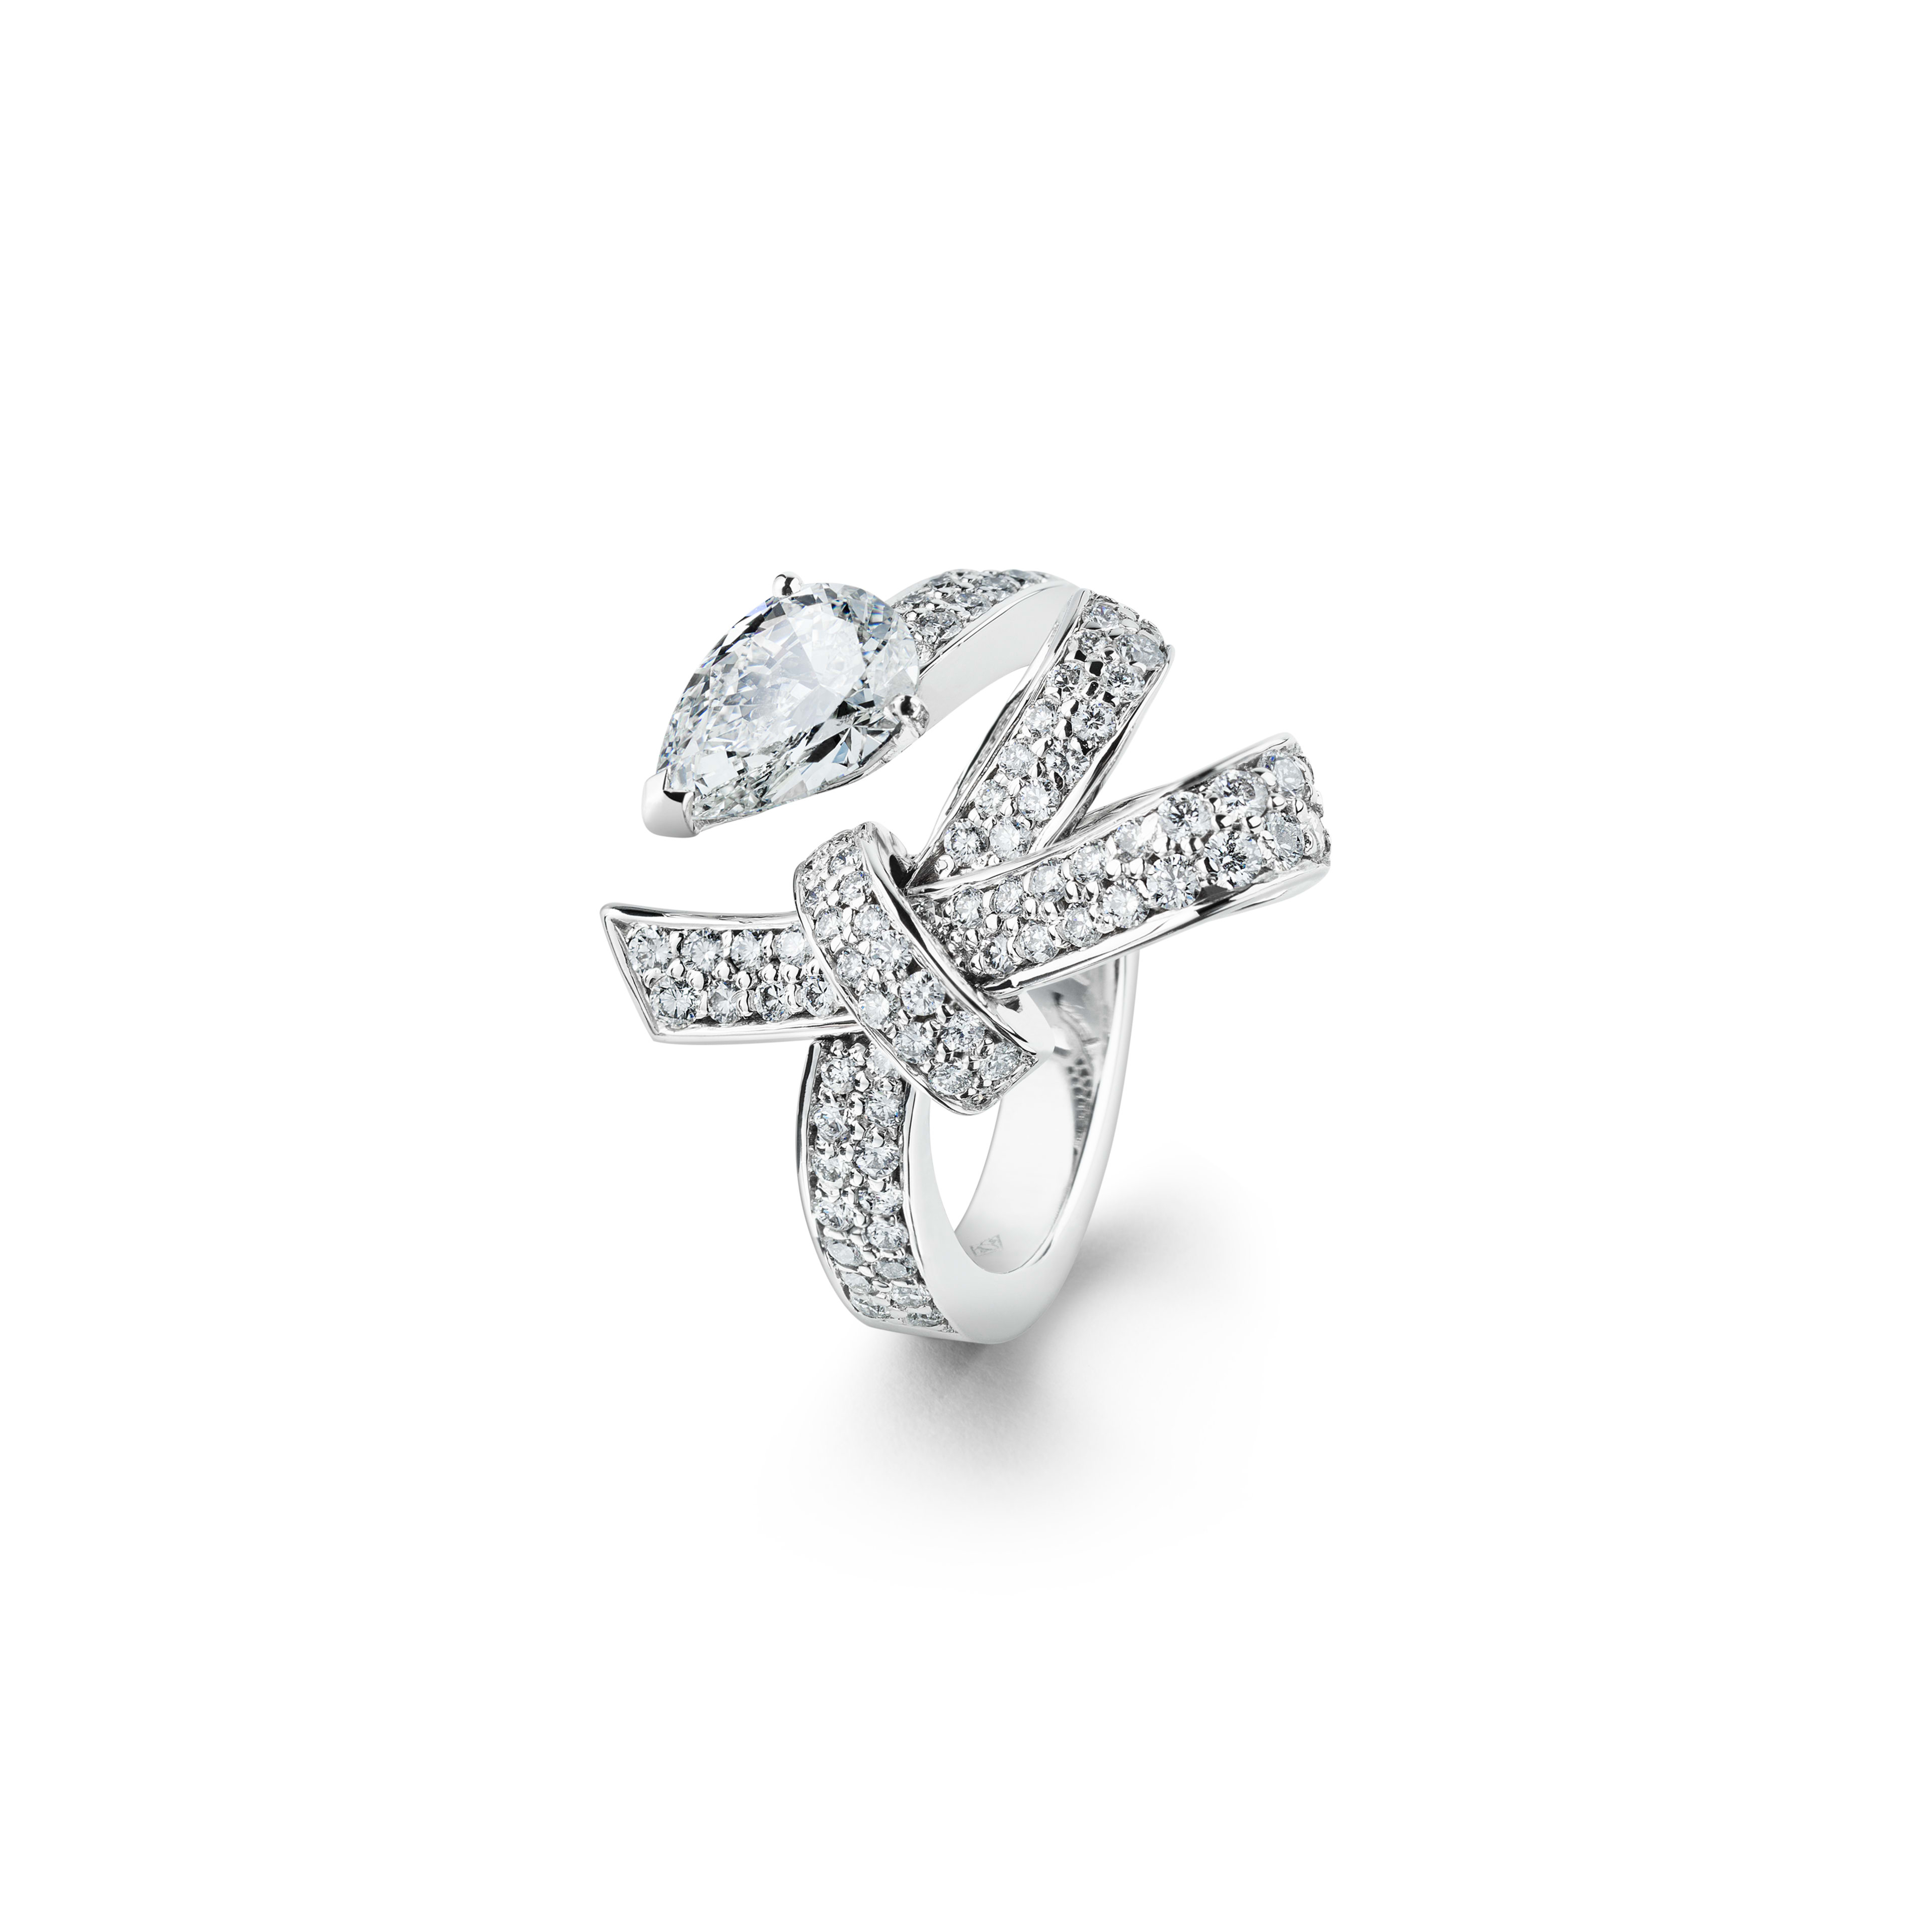 Ruban ring - Ruban ring in 18K white gold and diamonds with one center diamond - Default view - see full sized version